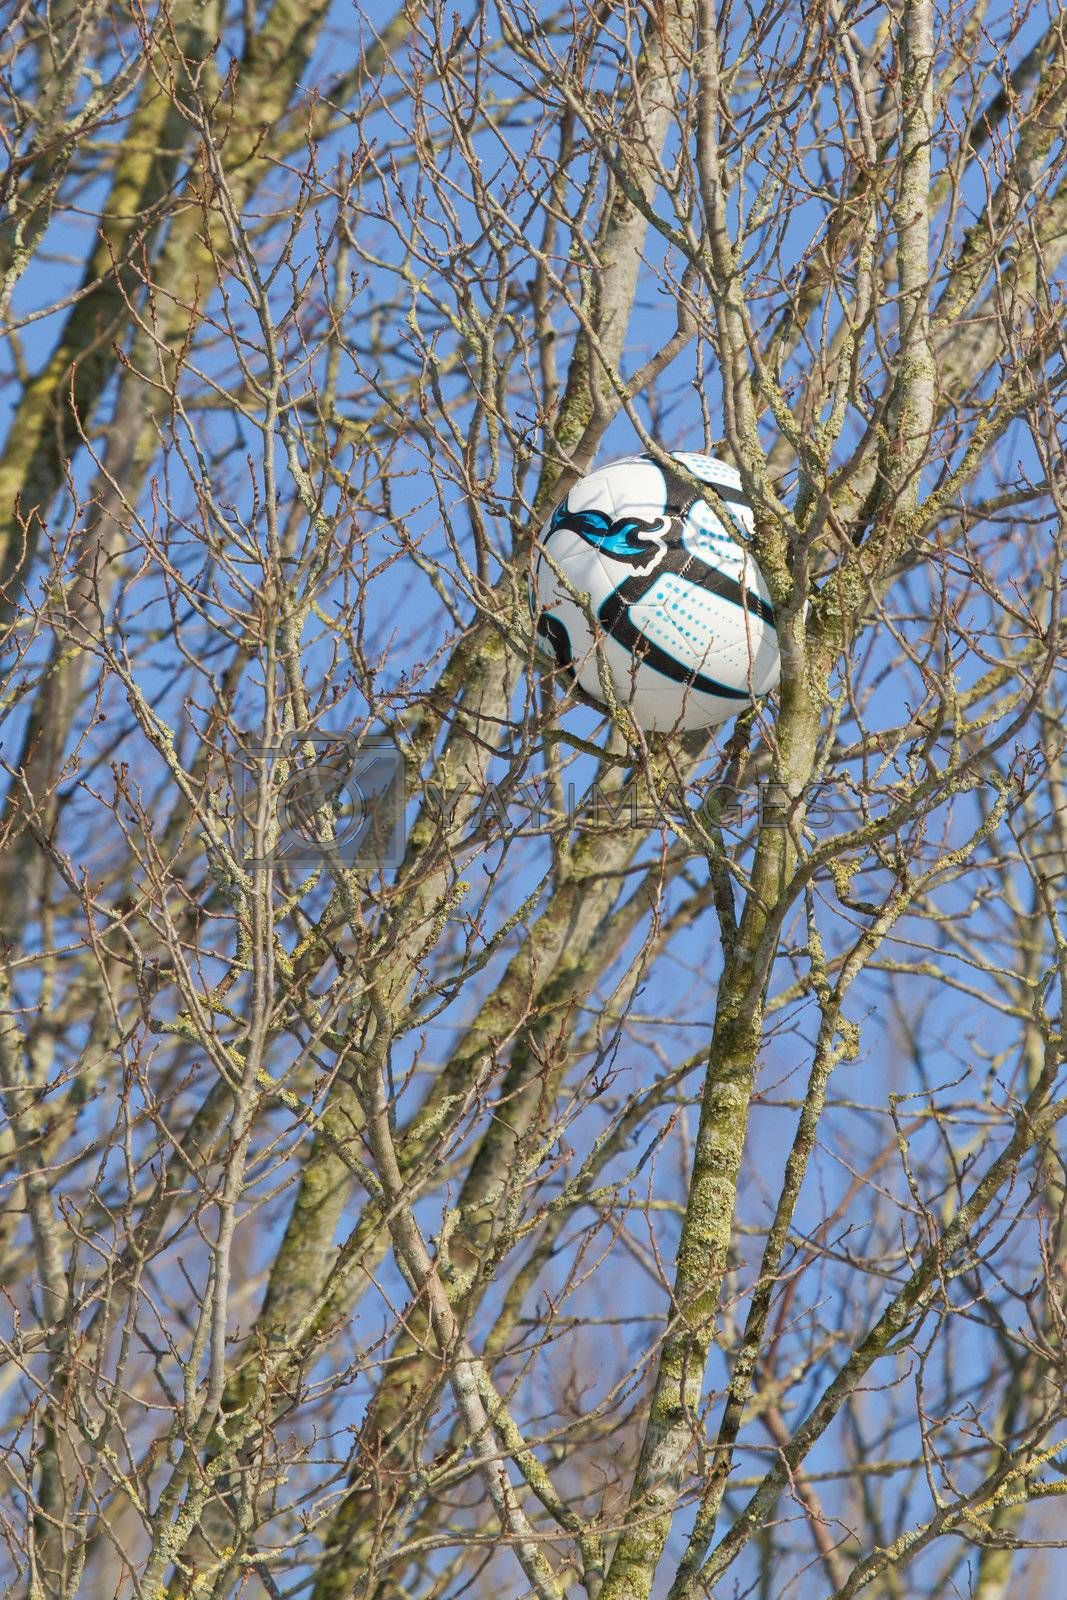 A football in a tree